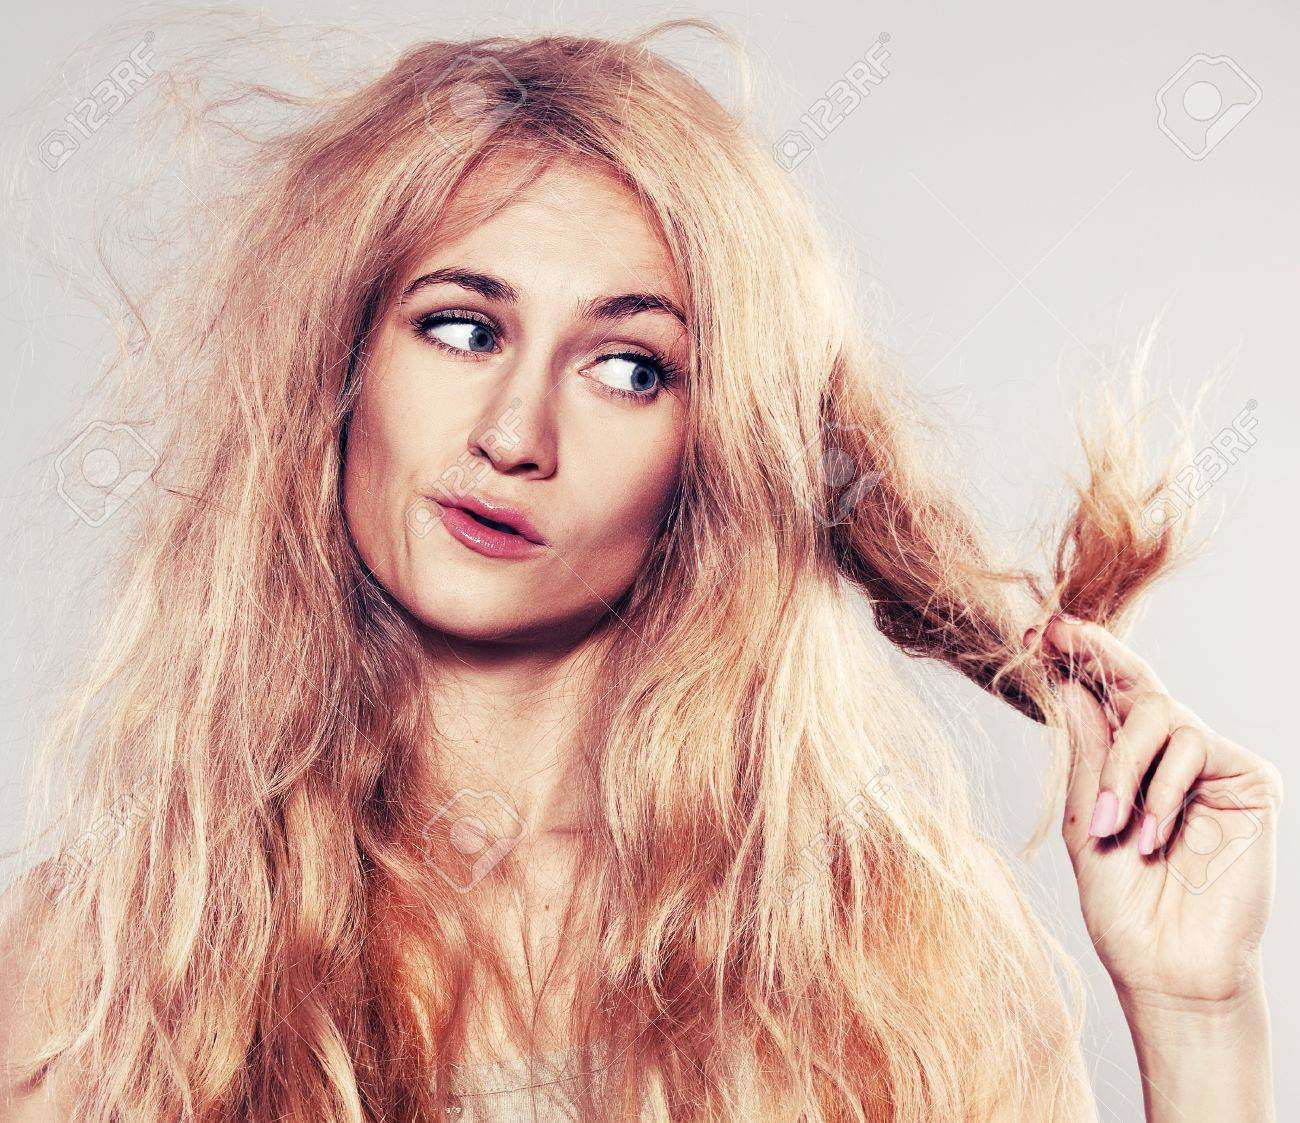 Young woman looking at split ends. Damaged long hair Stock Photo - 16491718